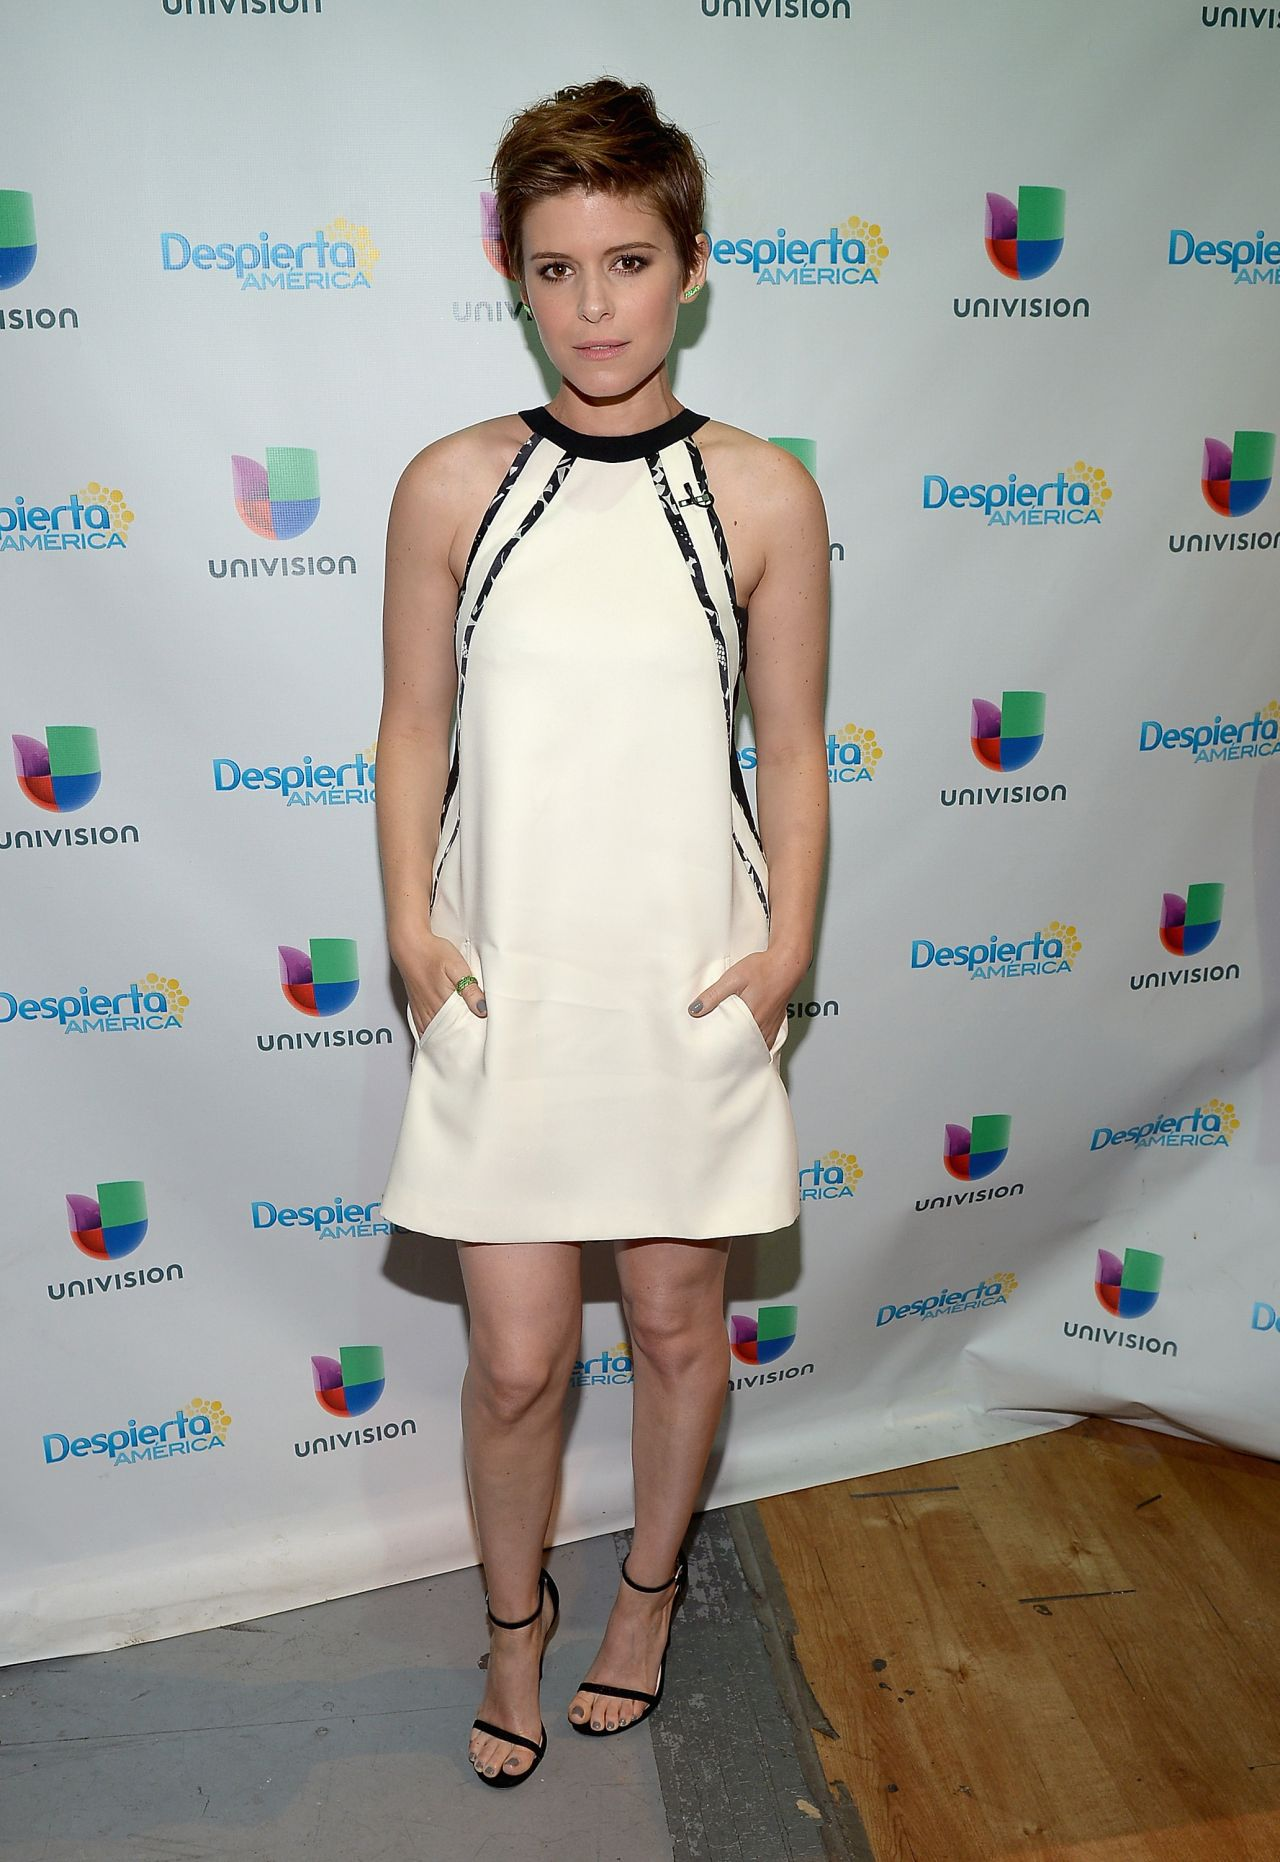 kate-mara-despierta-america-in-miami-july-2015_